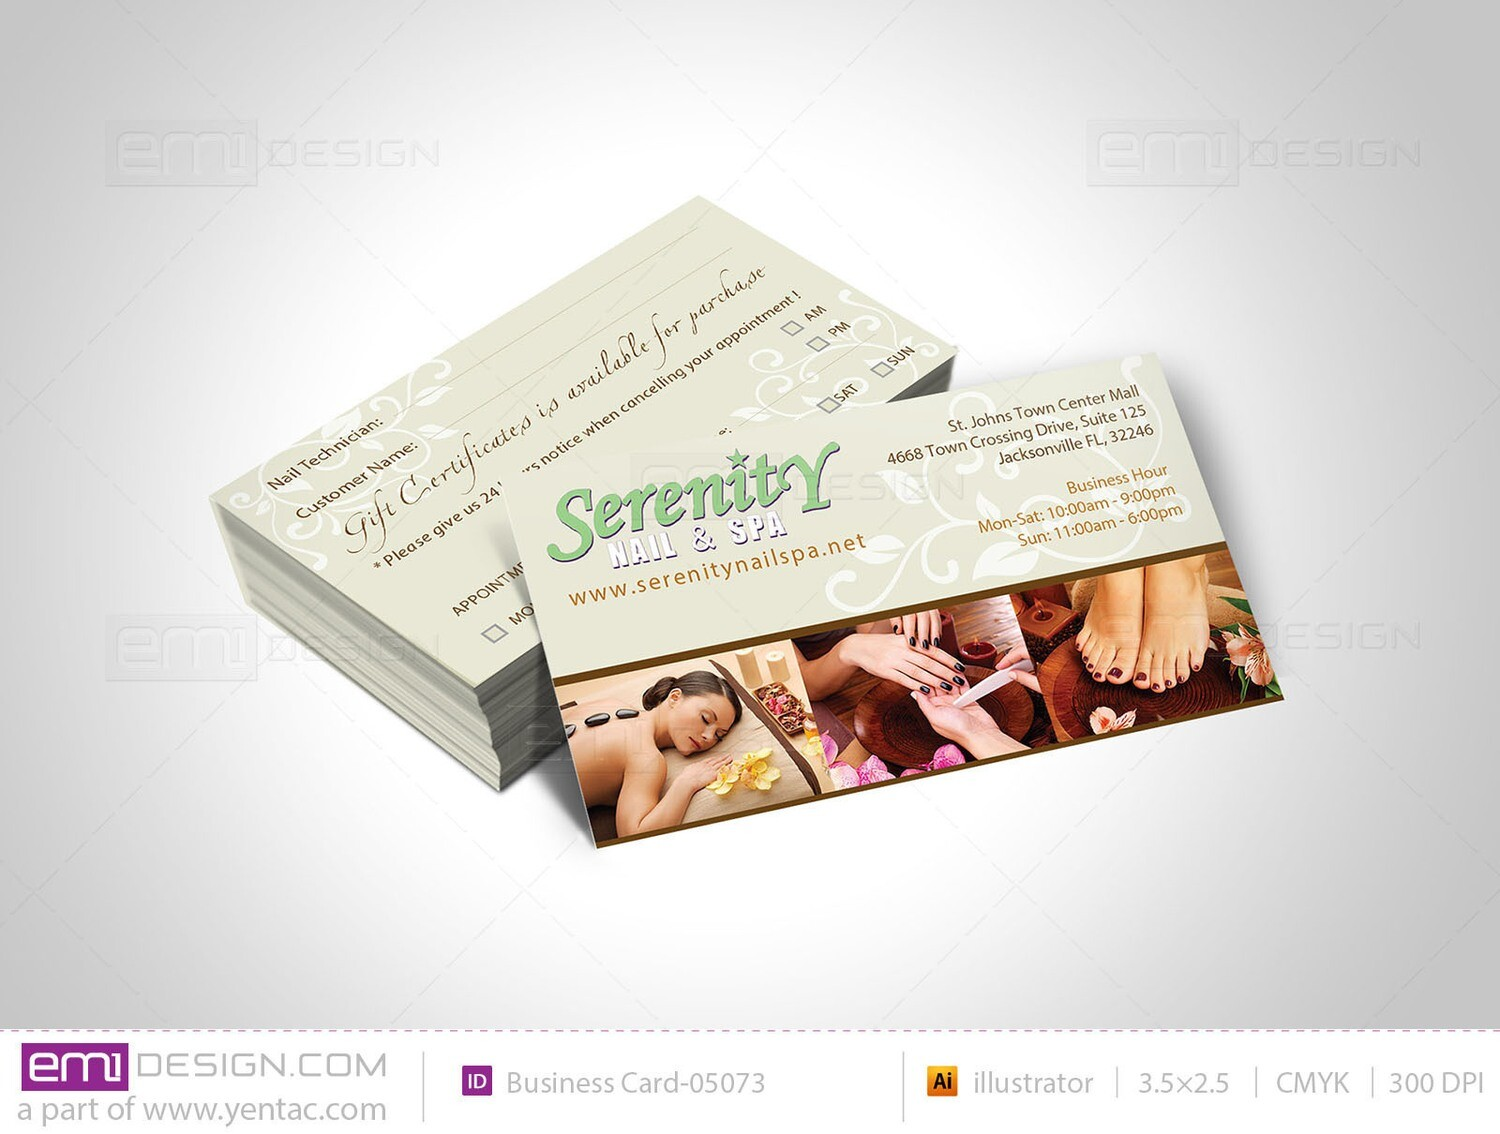 Business Card - Template buscard-05073